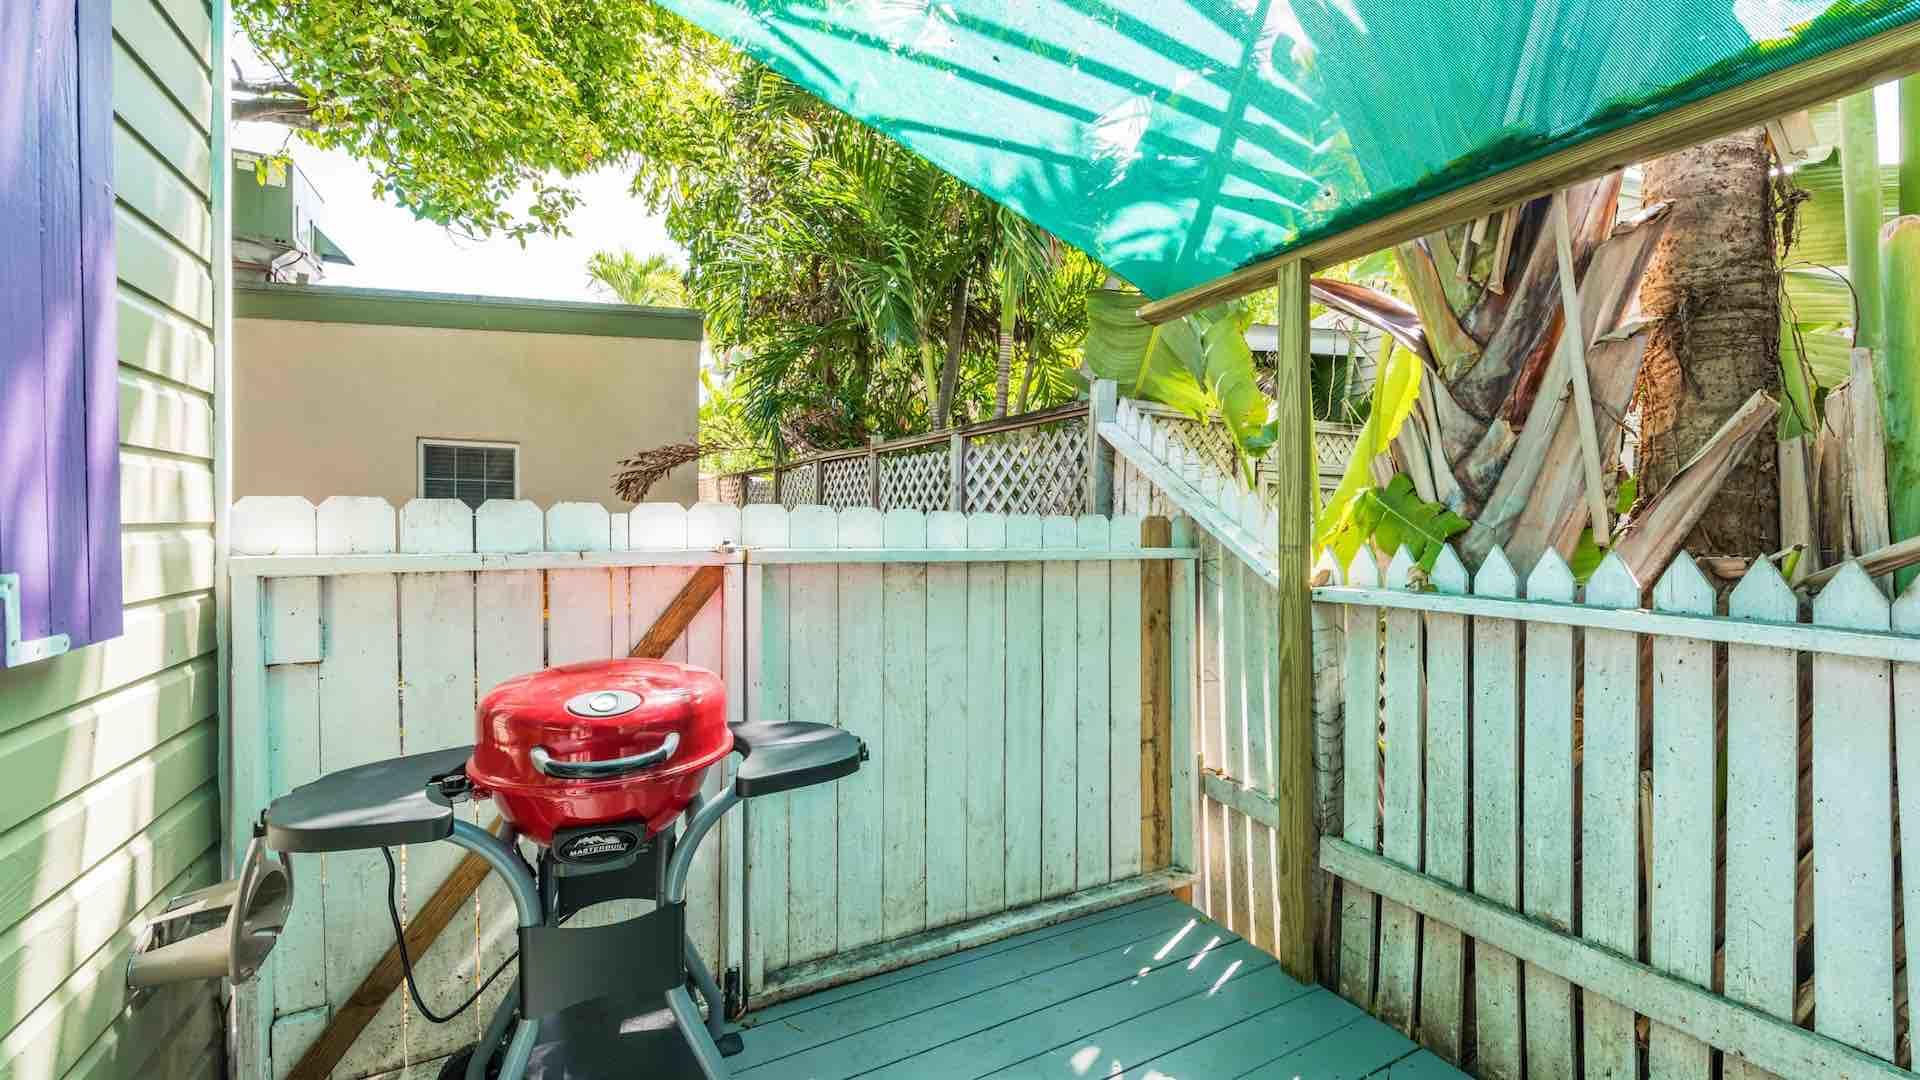 The cozy back porch is covered, with an electric grill...